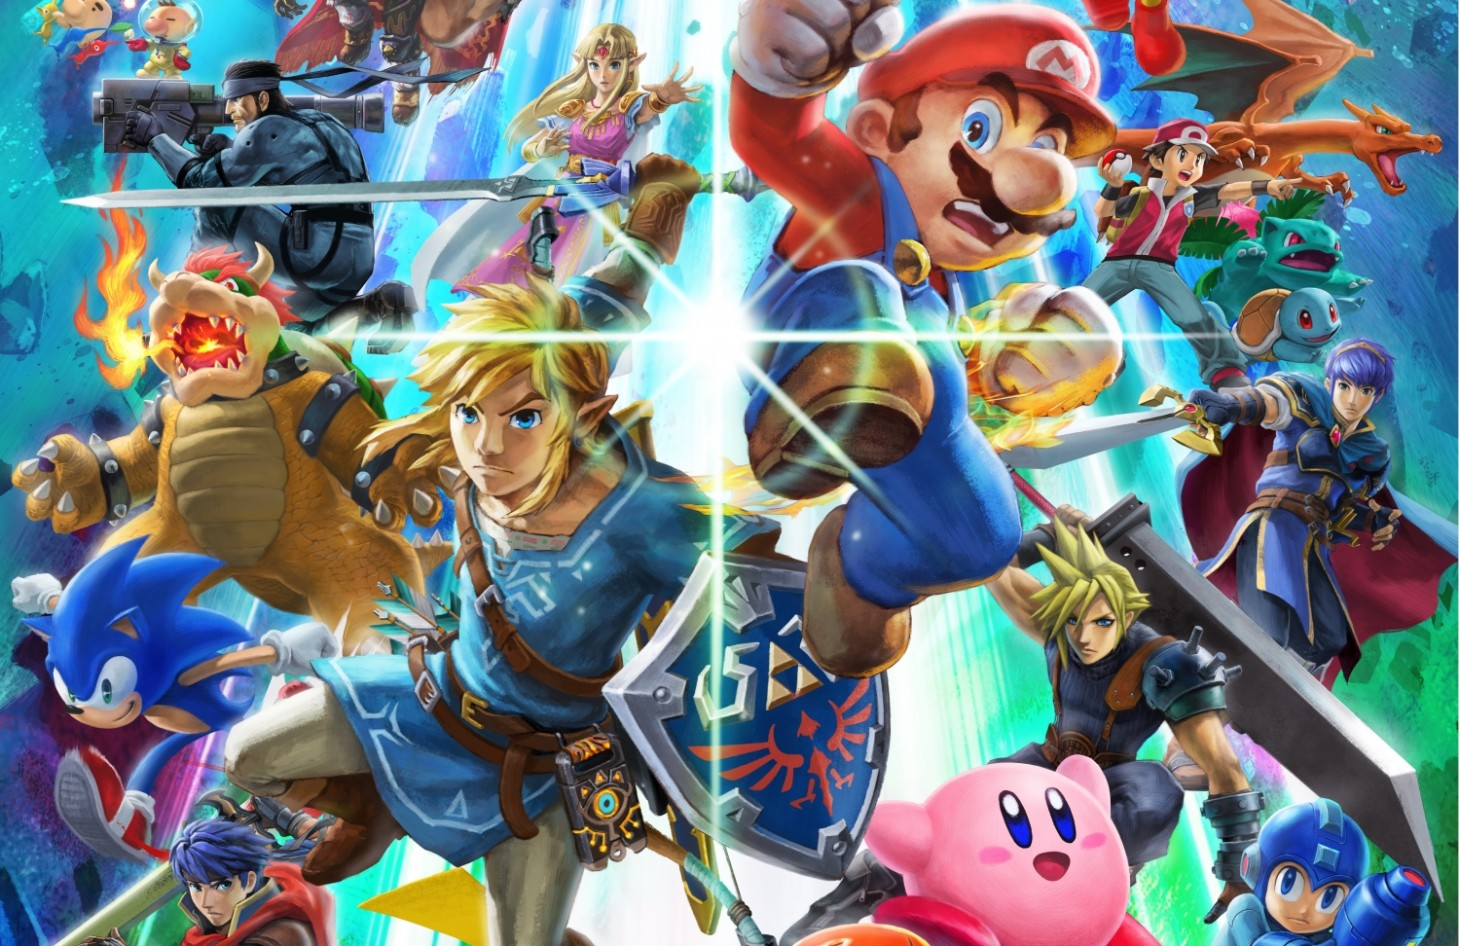 all the characters stages and pokémon confirmed for super smash